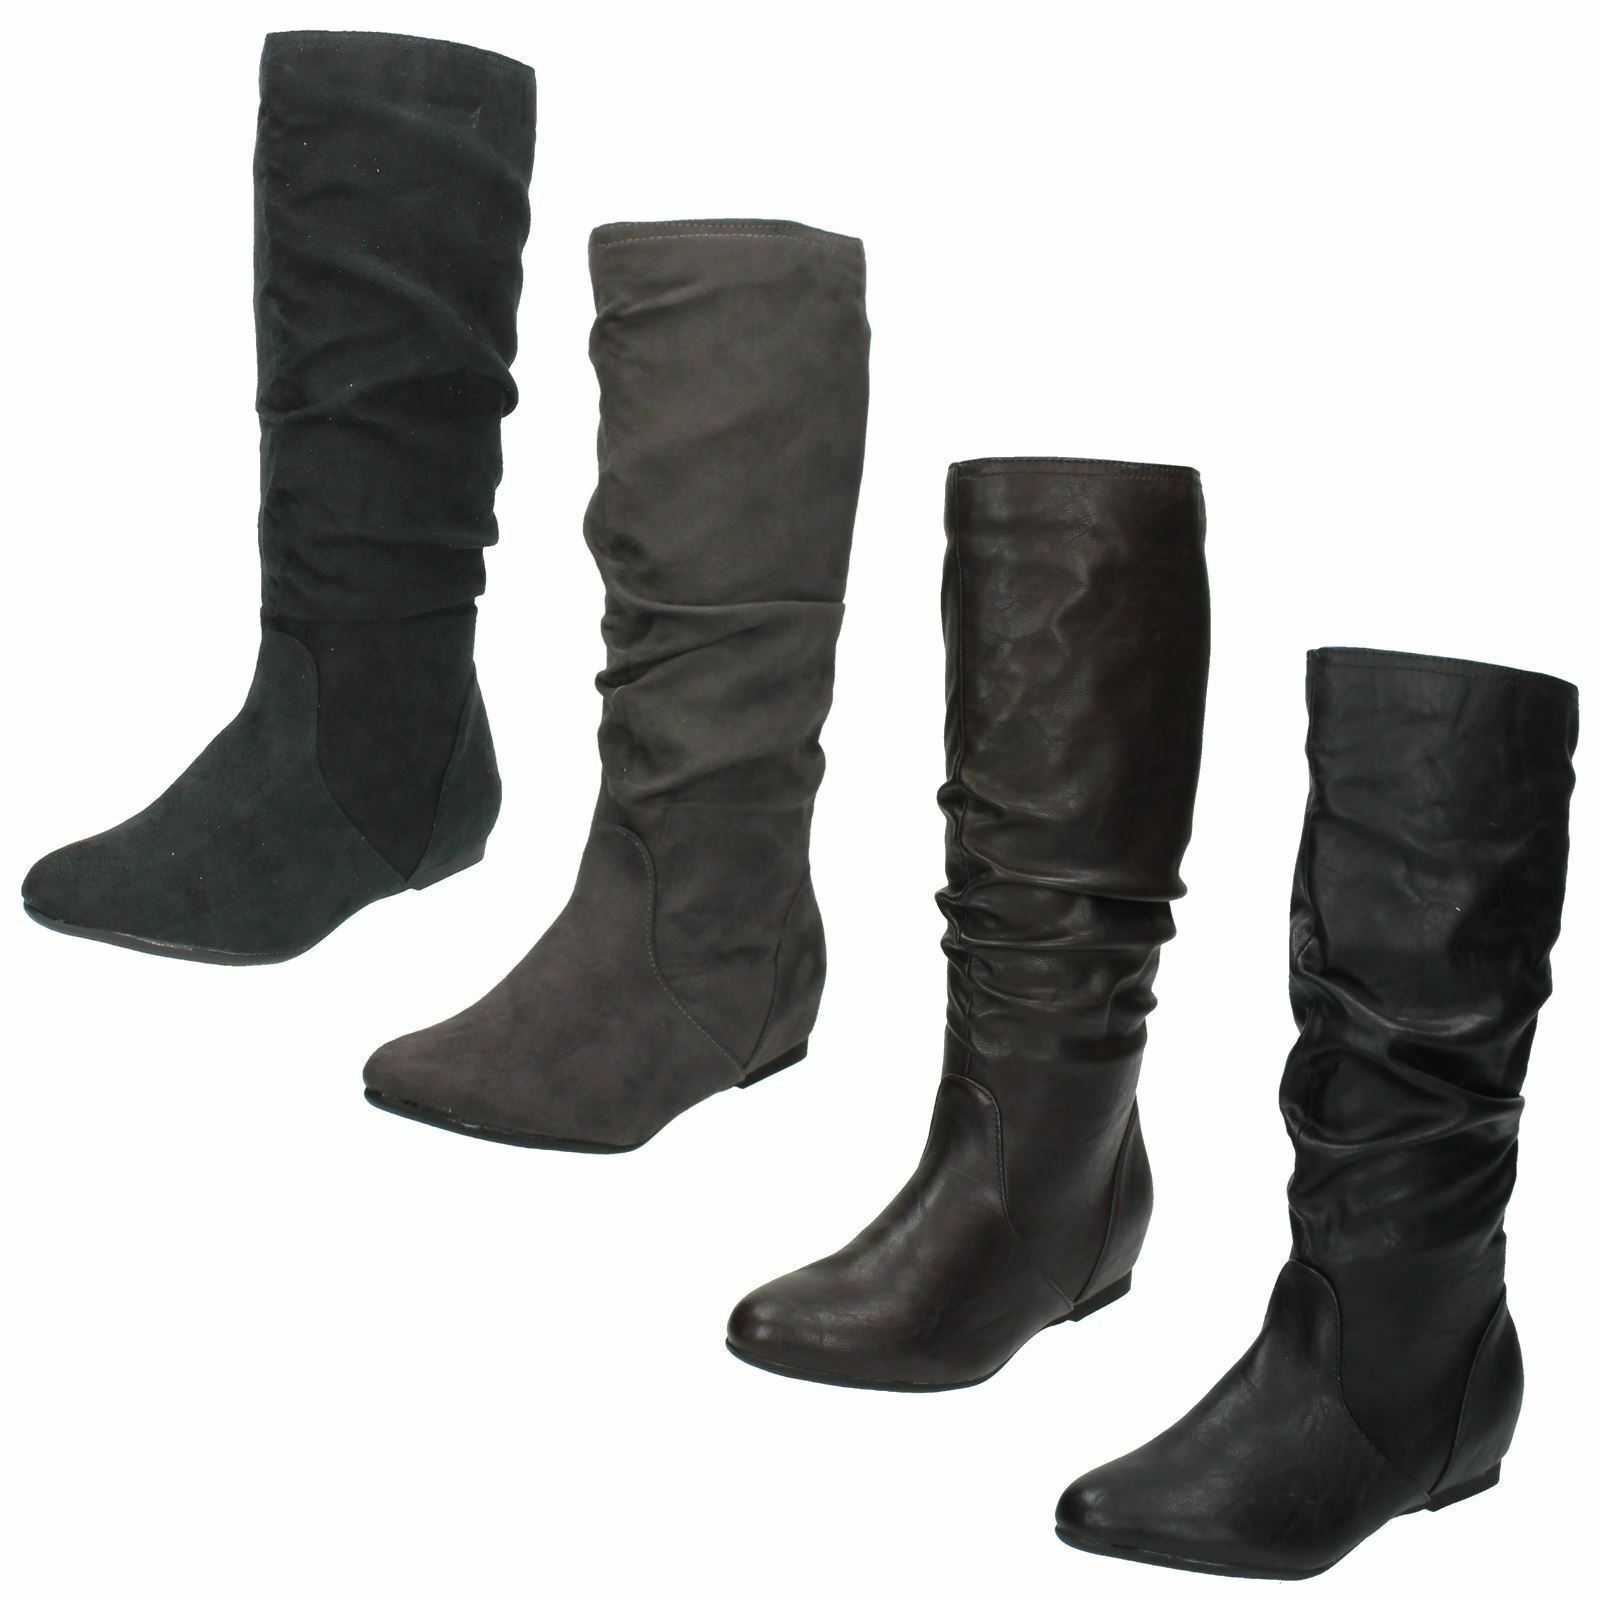 SALE LADIES COCO MID CALF ROUND TOE FLAT RUCHED DETAIL CASUAL BOOTS L9333 £9.99